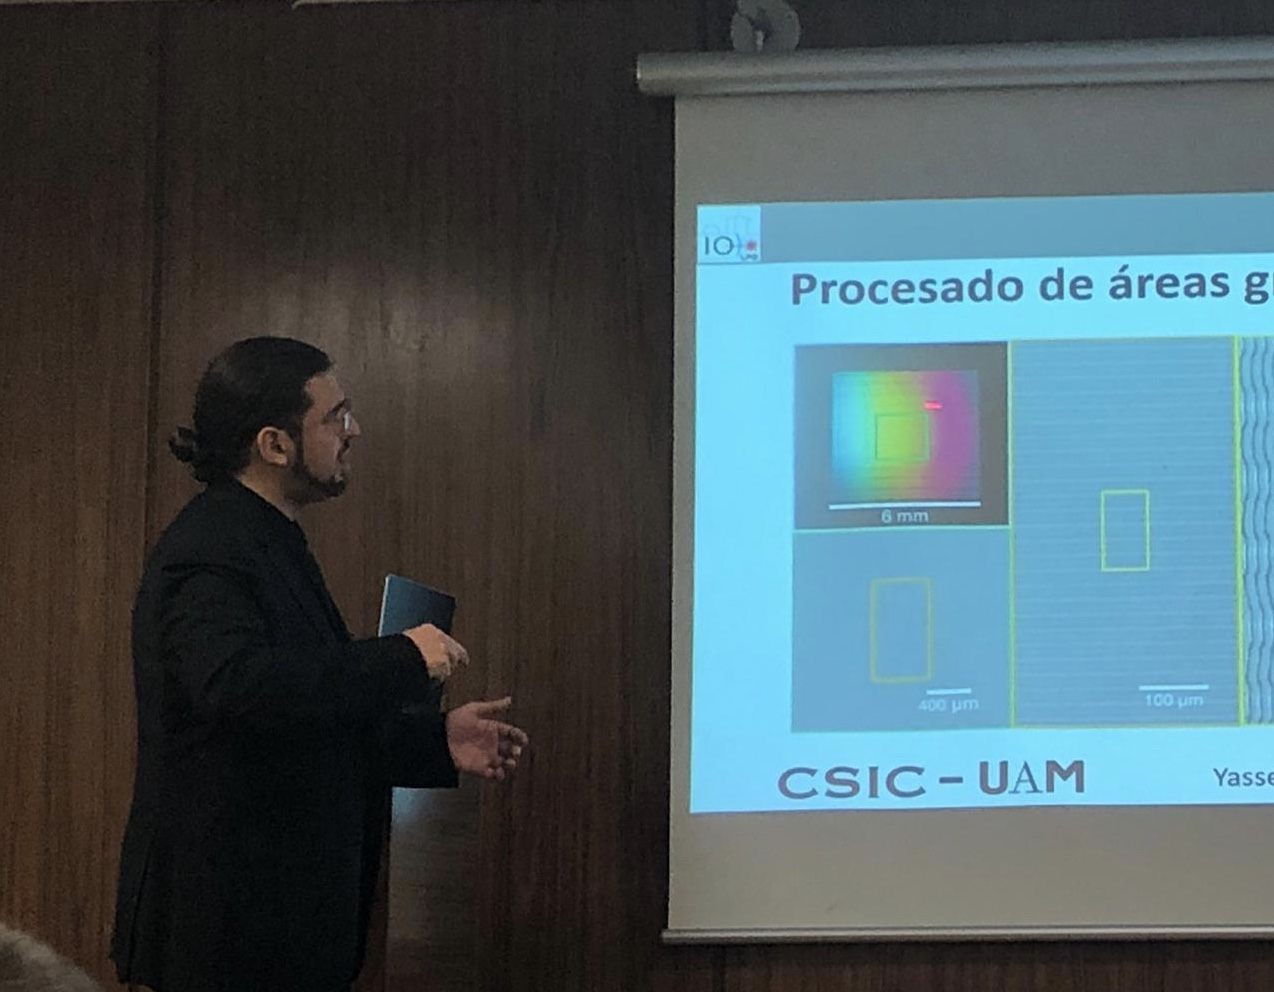 Yasser Fuentes presented his doctoral thesis